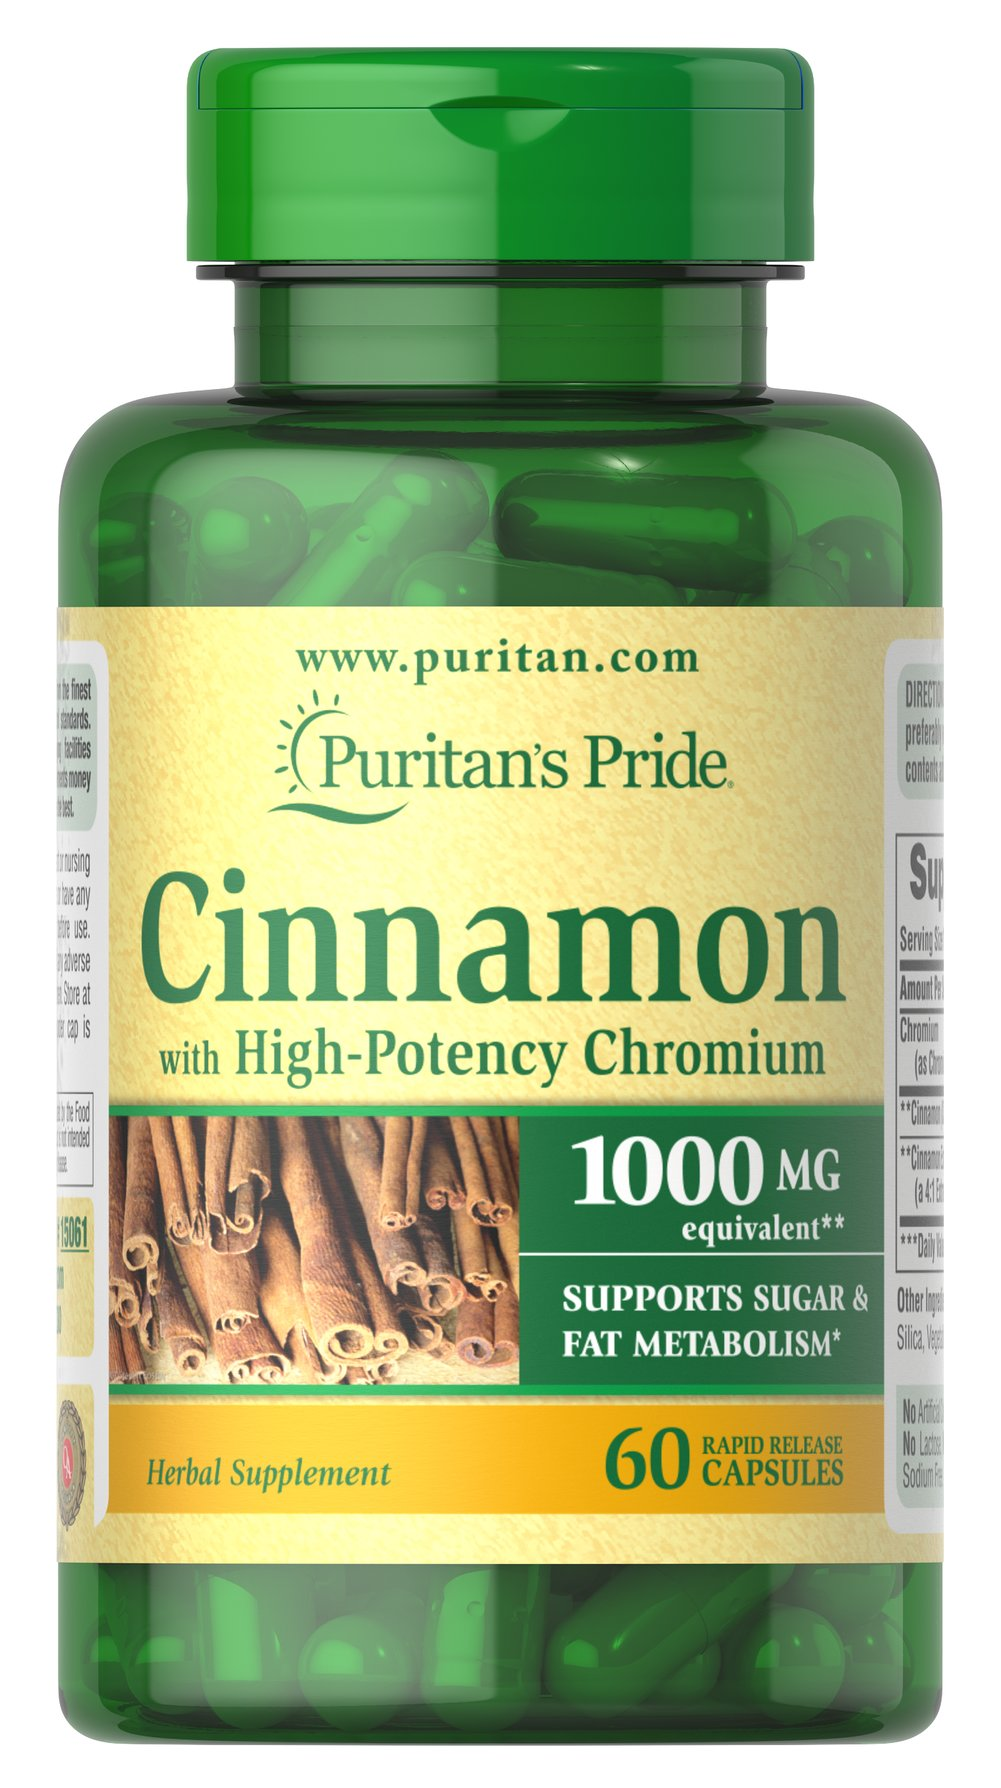 Cinnamon Complex with High Potency Chromium Thumbnail Alternate Bottle View